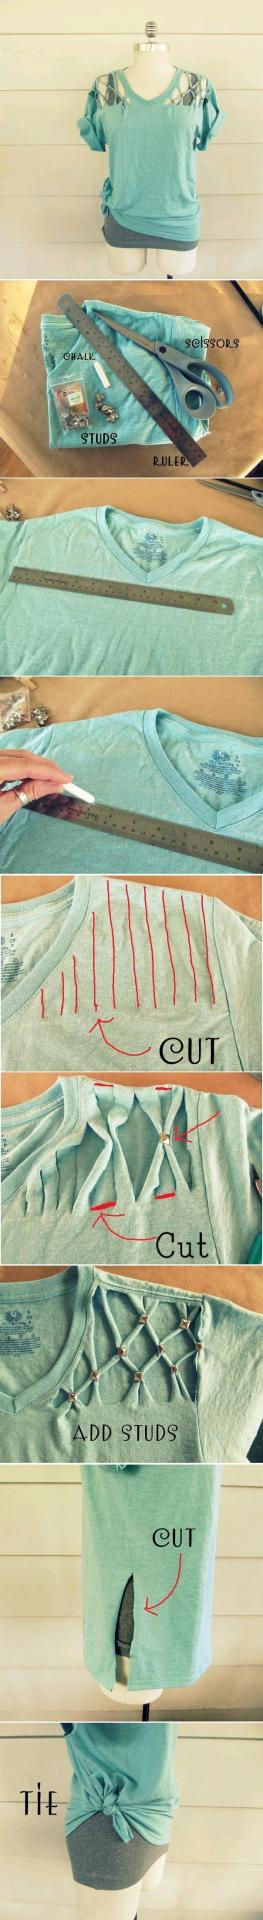 oasm:  DIY Cool Studded T-Shirt DIY Projects